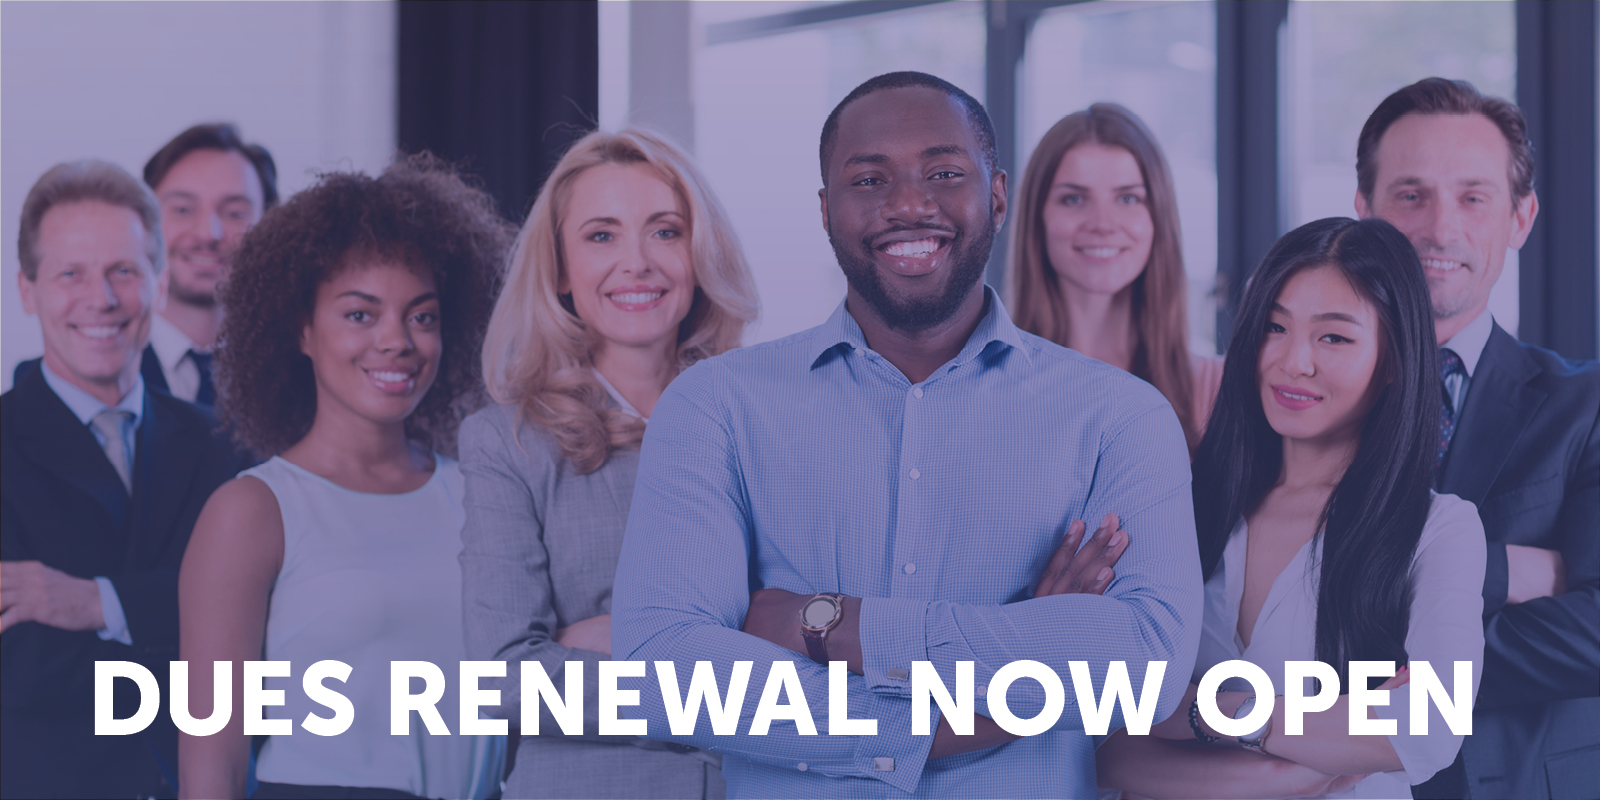 dues renewal is open now